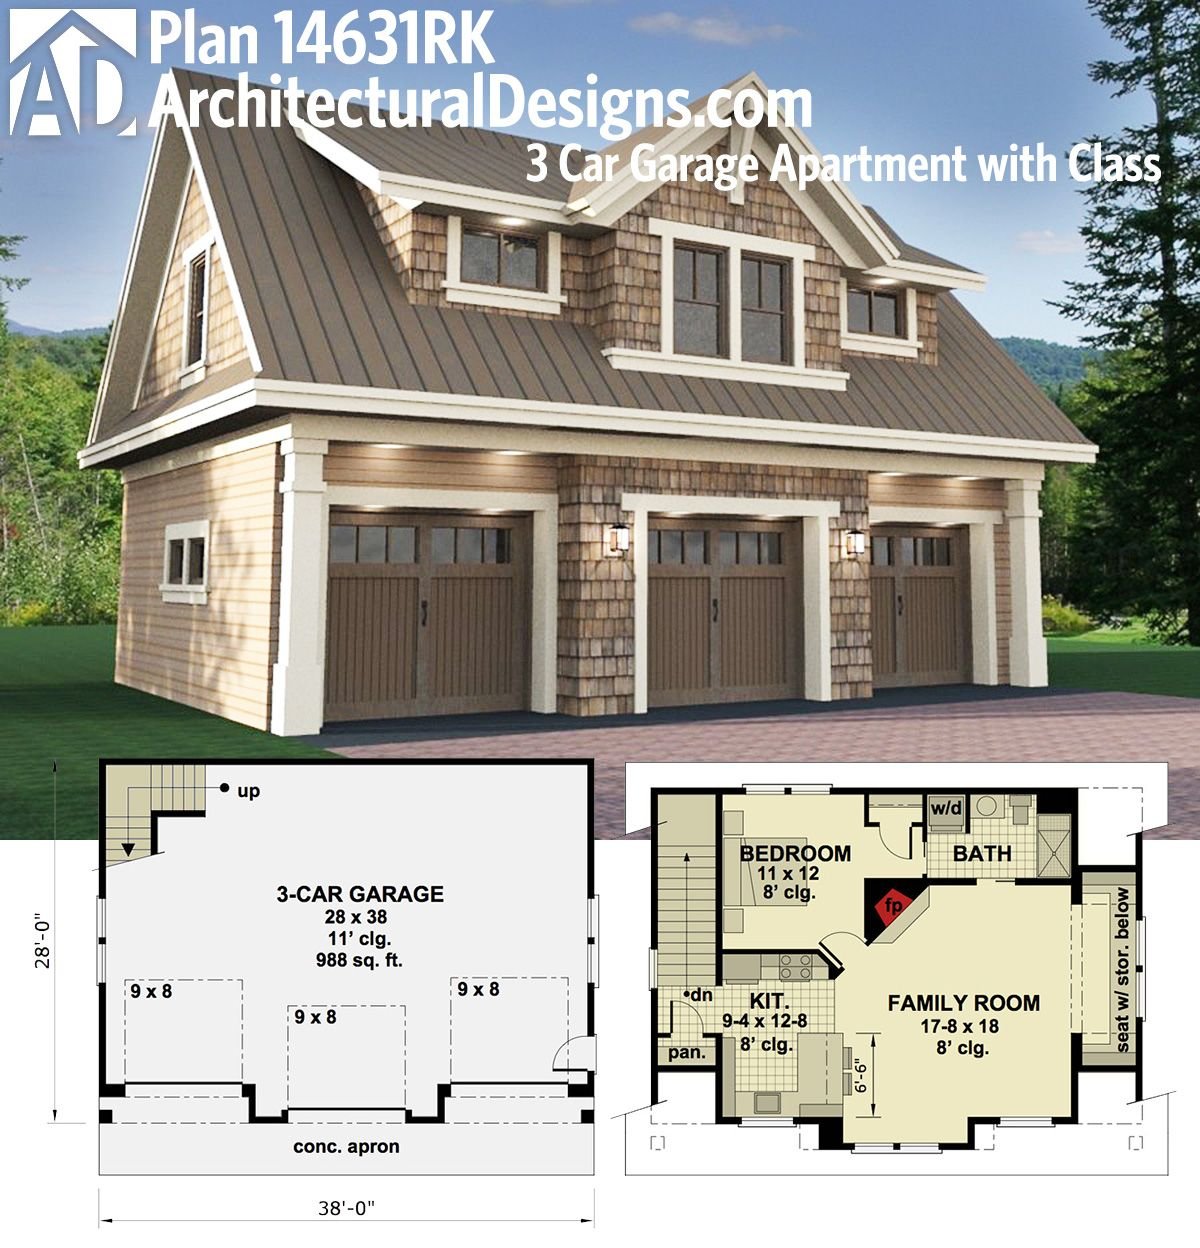 Architectural Designs Carriage House Plan 14631RK gives you parking     Architectural Designs Carriage House Plan 14631RK gives you parking for 3  cars on the main floor and a fully functioning apartment with almost 1 000  sq  ft